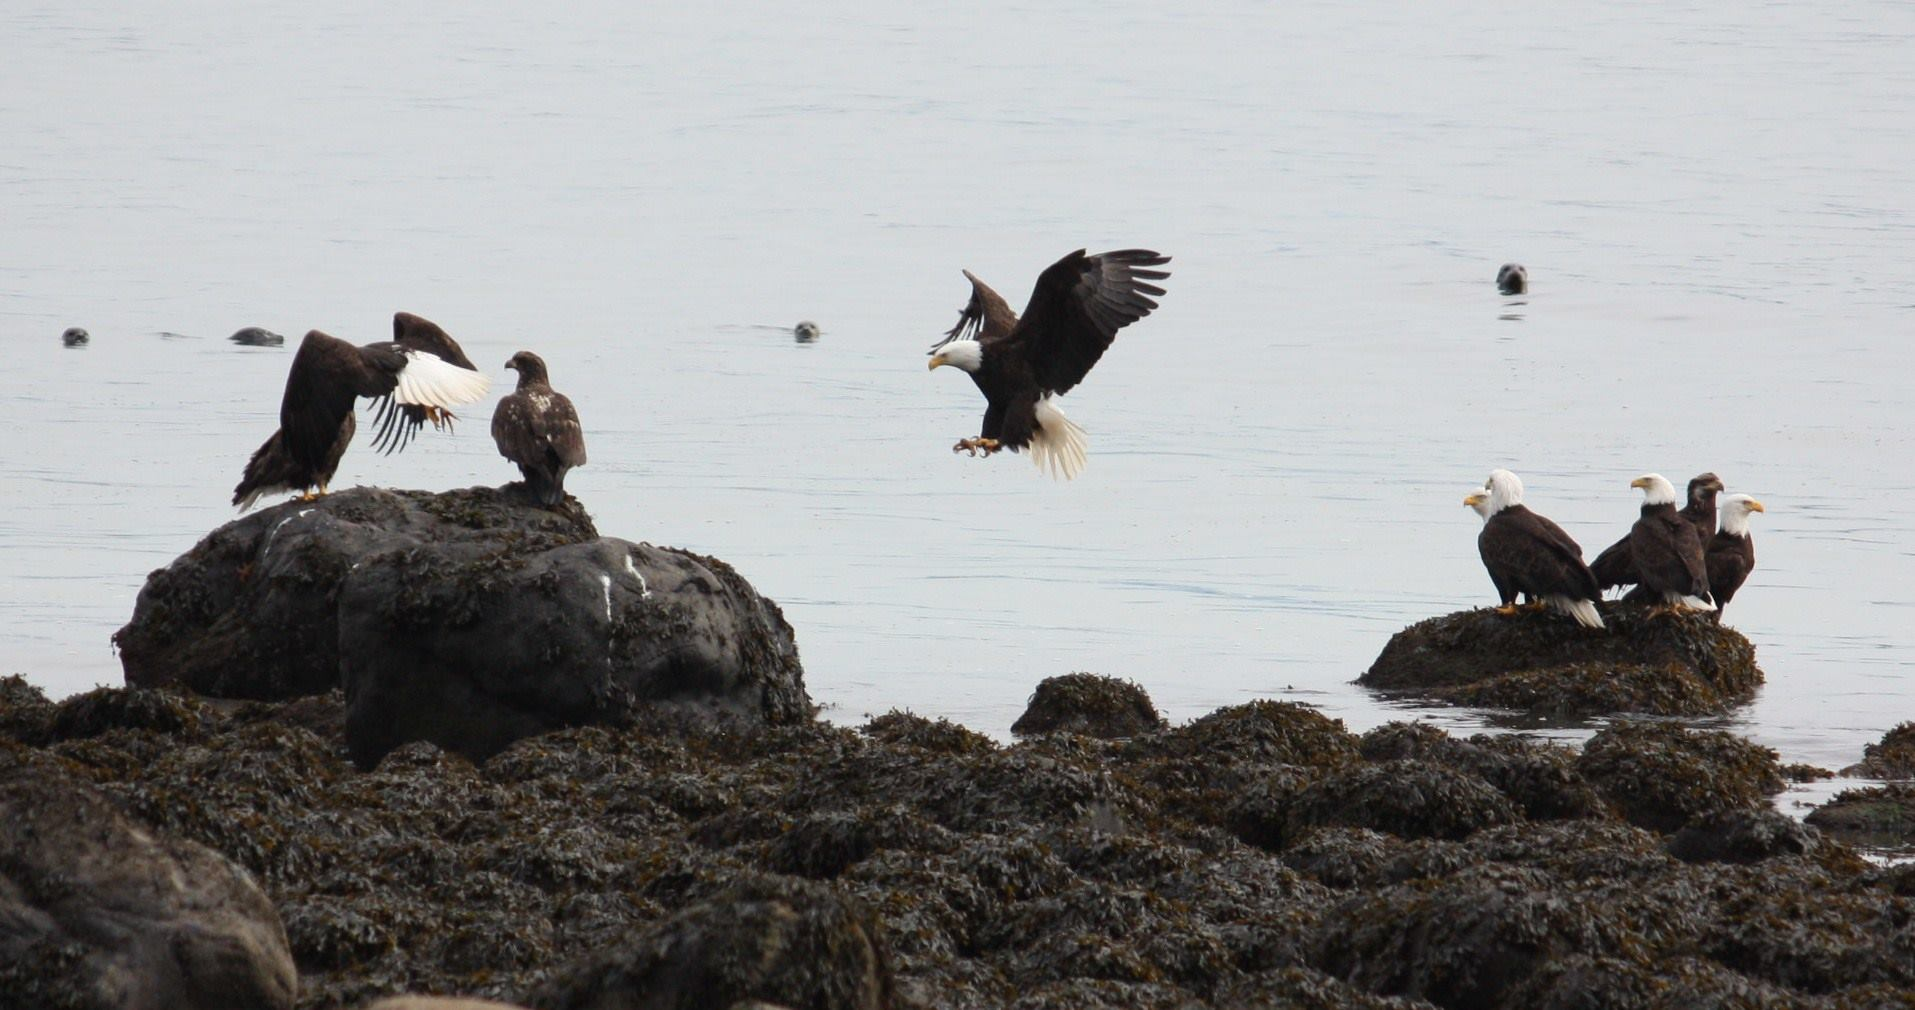 Pack of Bald Eagles on water_taken from SBV facebook page.jpg